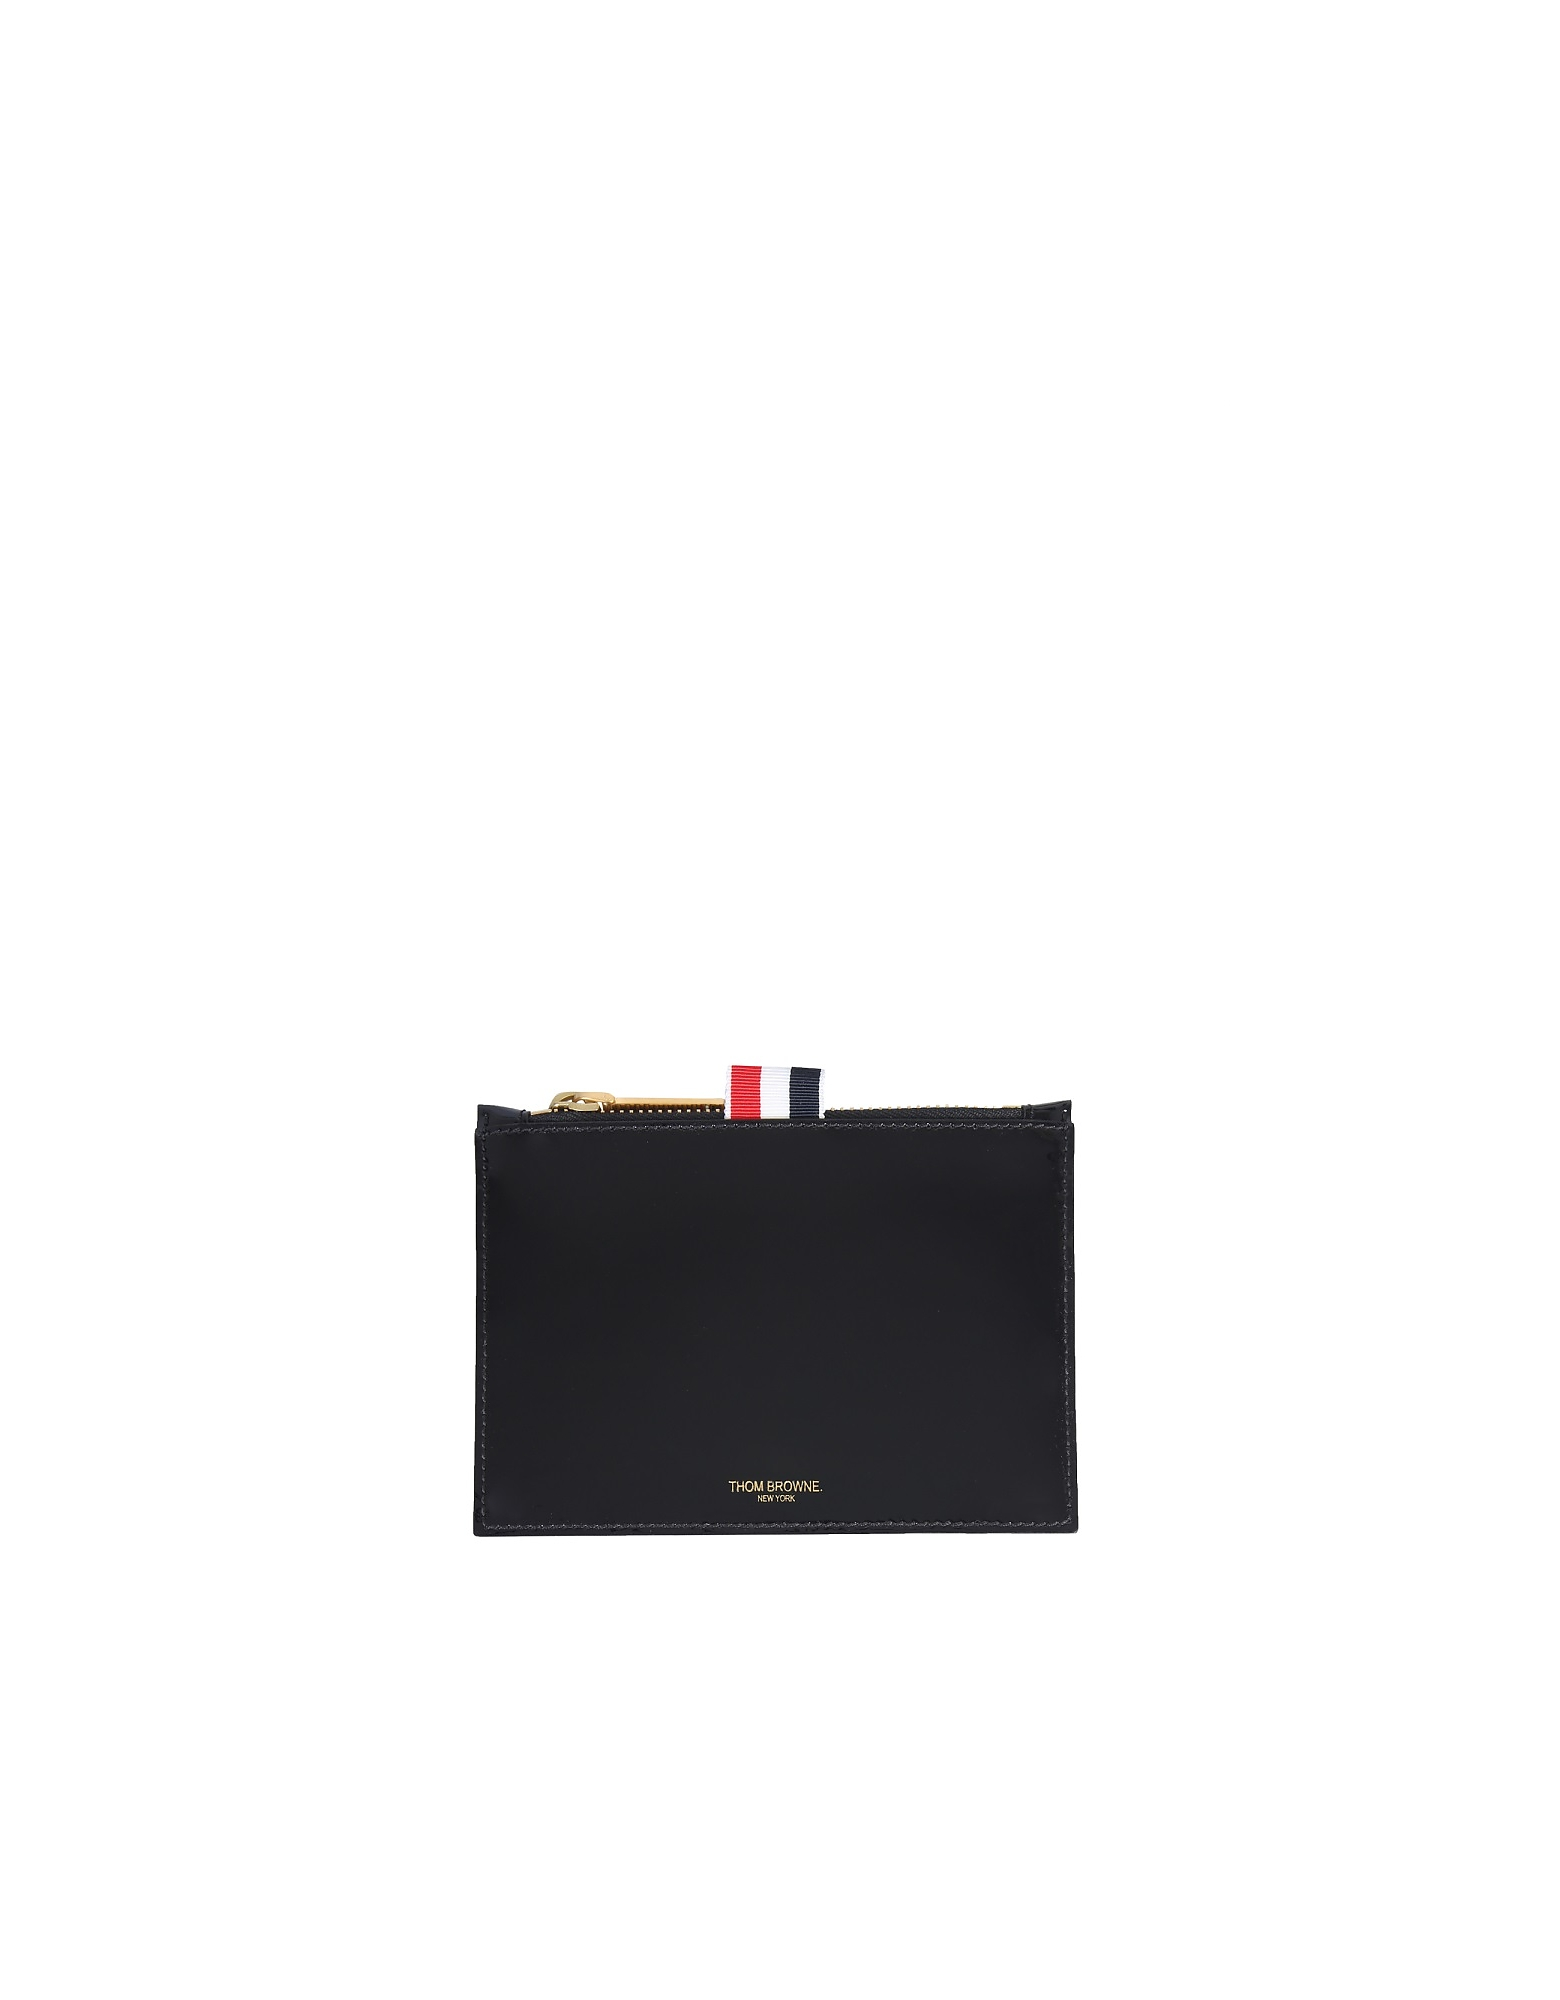 Thom Browne Designer Wallets, Small Coin Purse photo